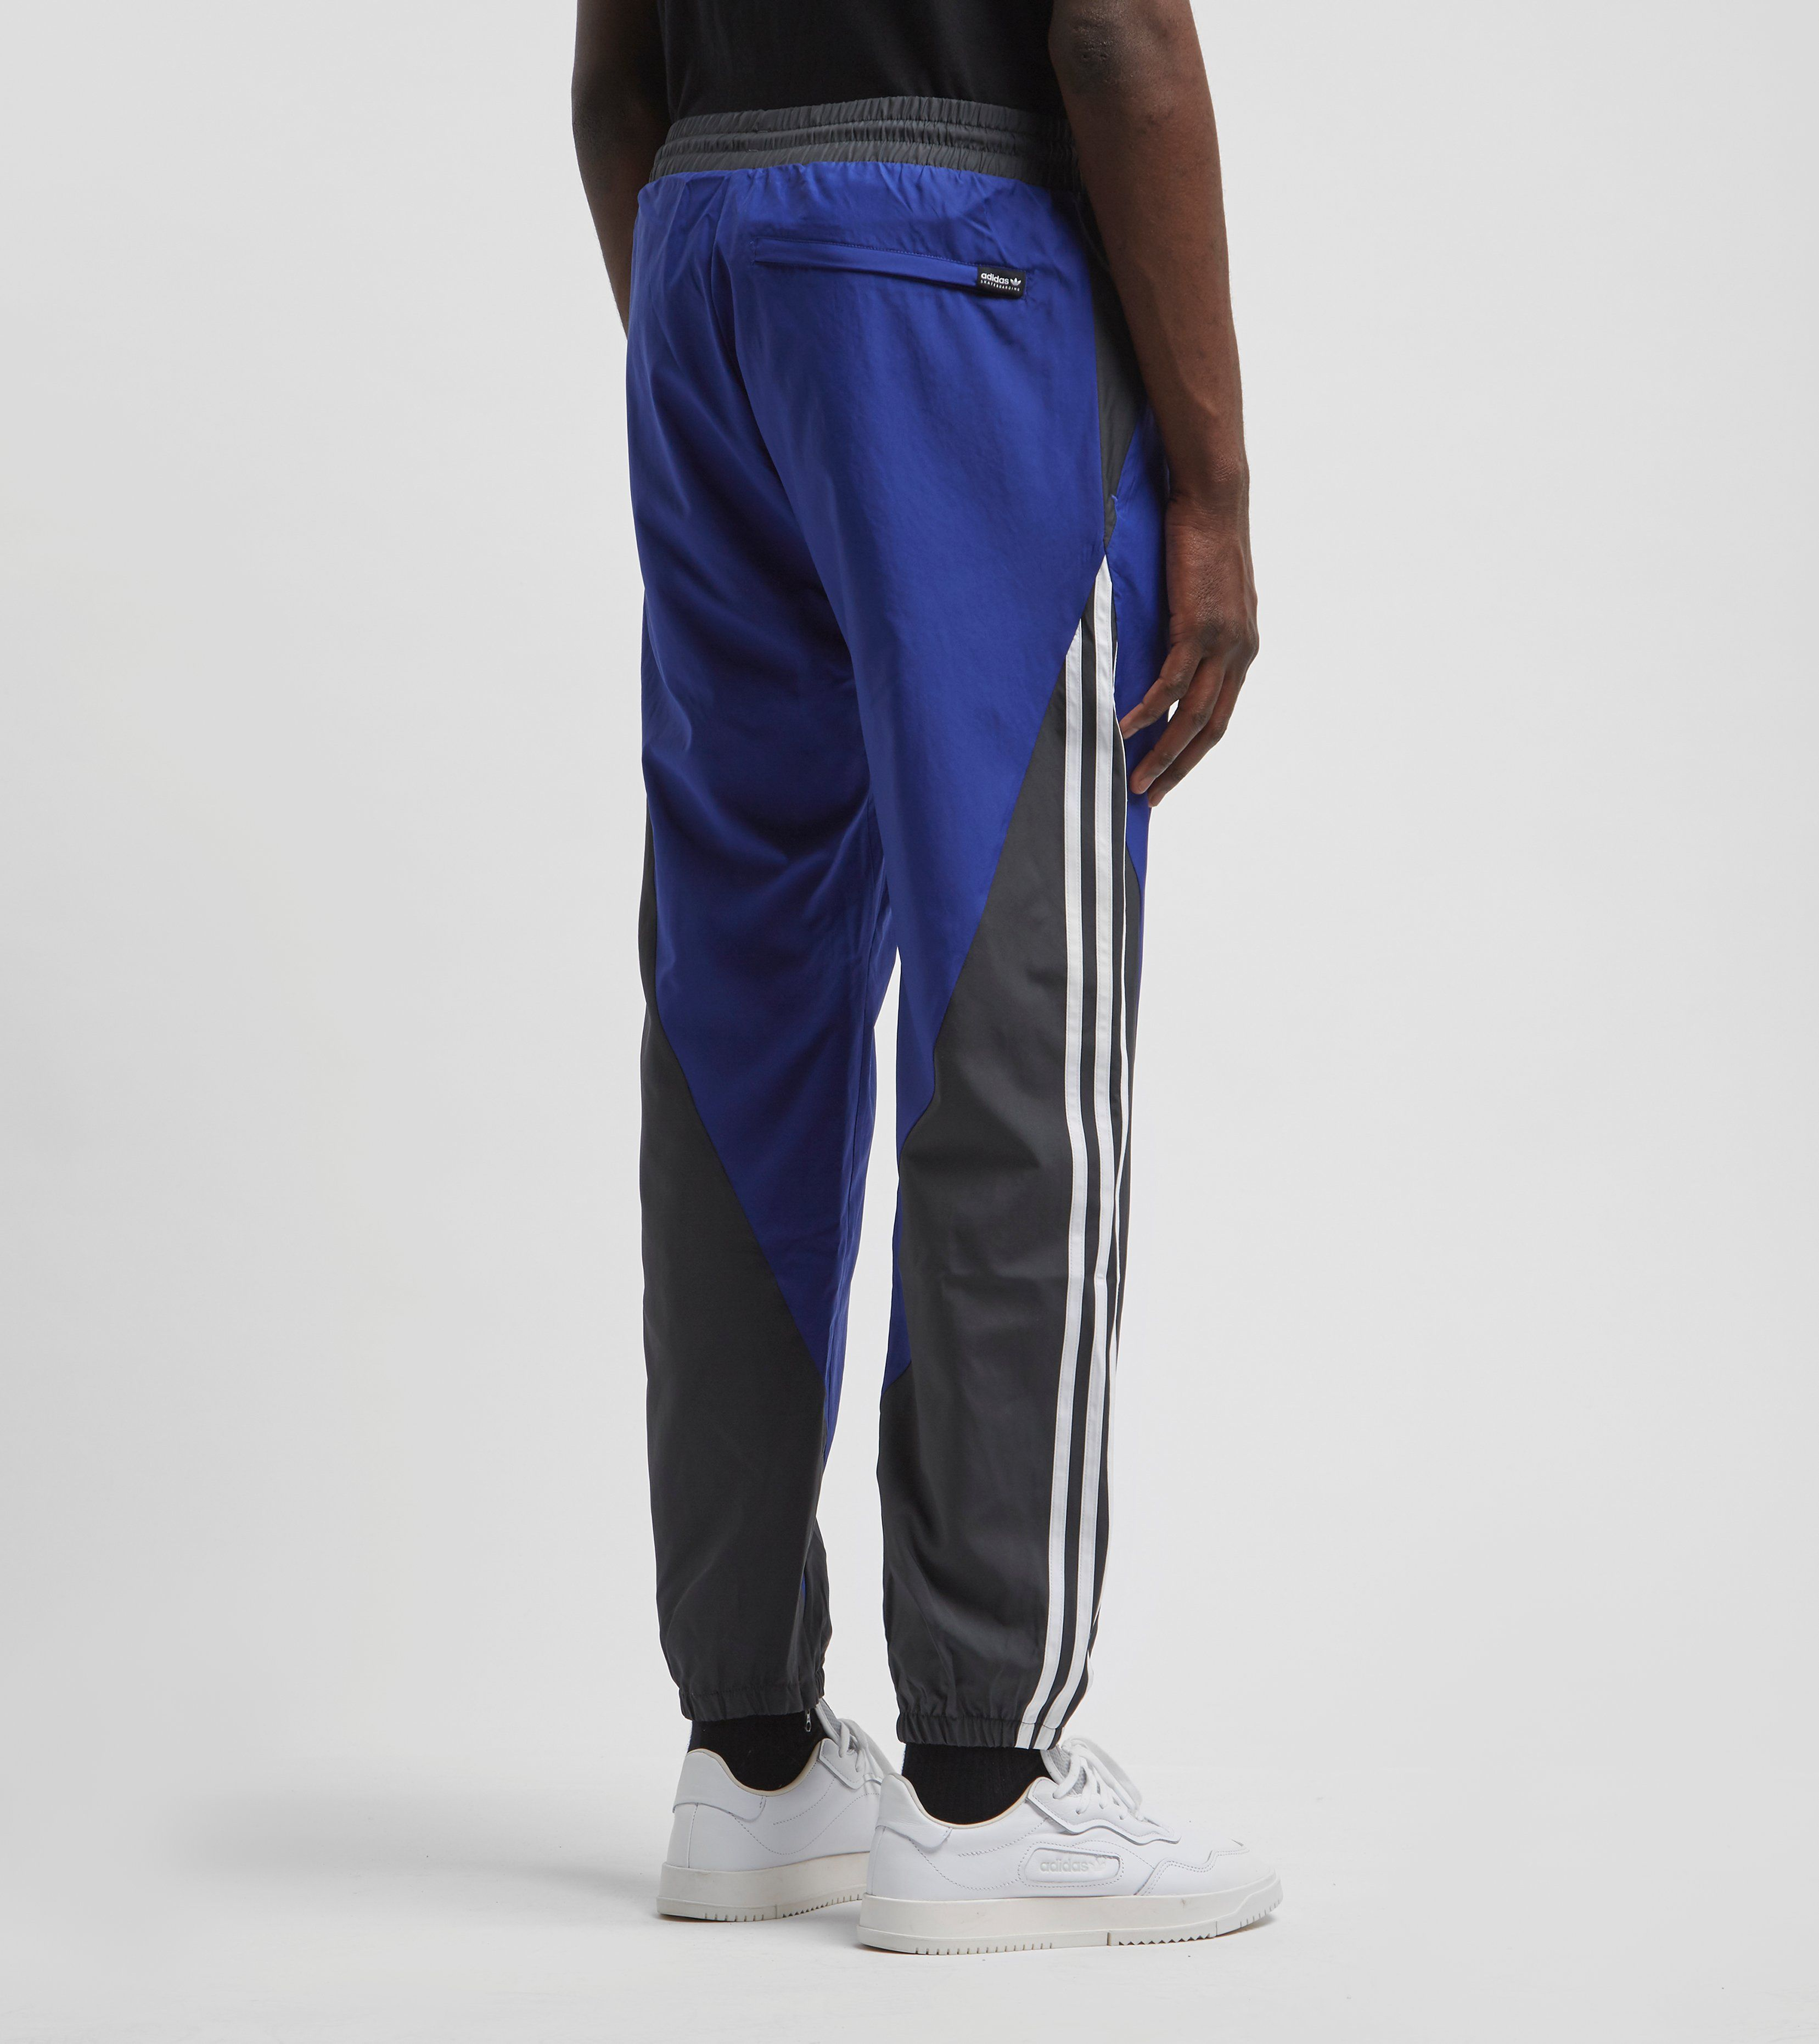 adidas Originals Insley Cuffed Track Pants